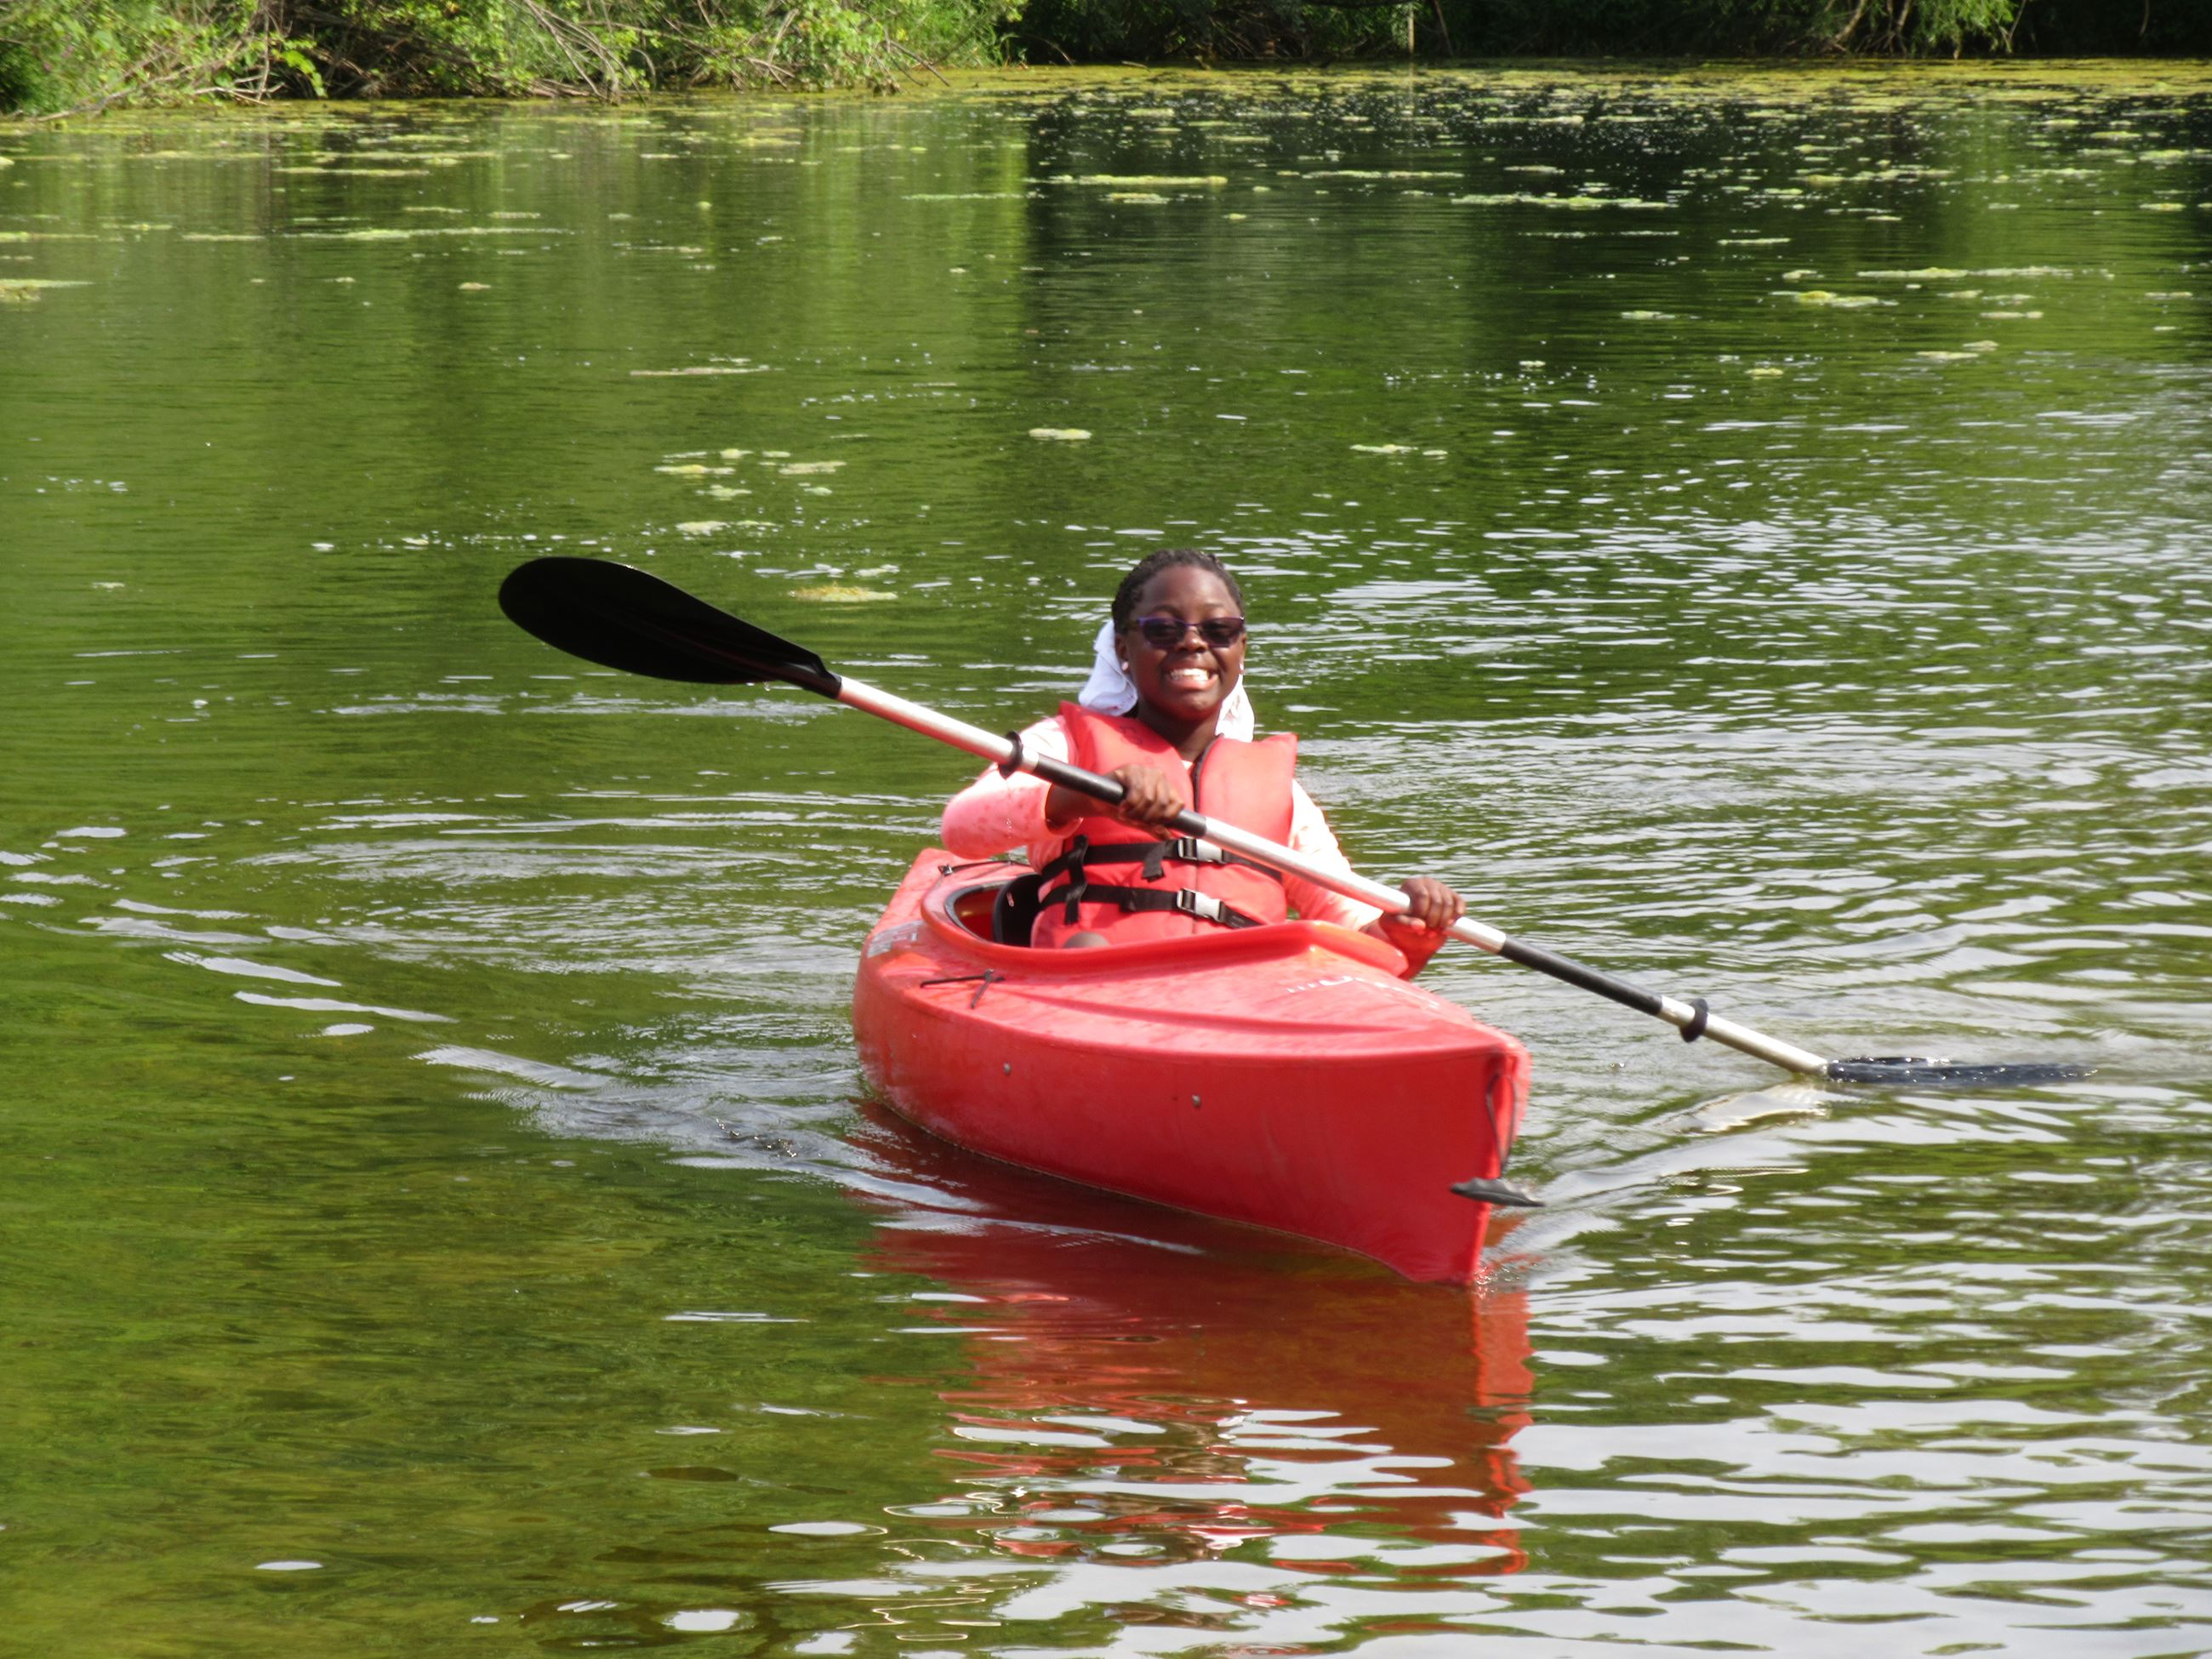 Girl kayaking on pond